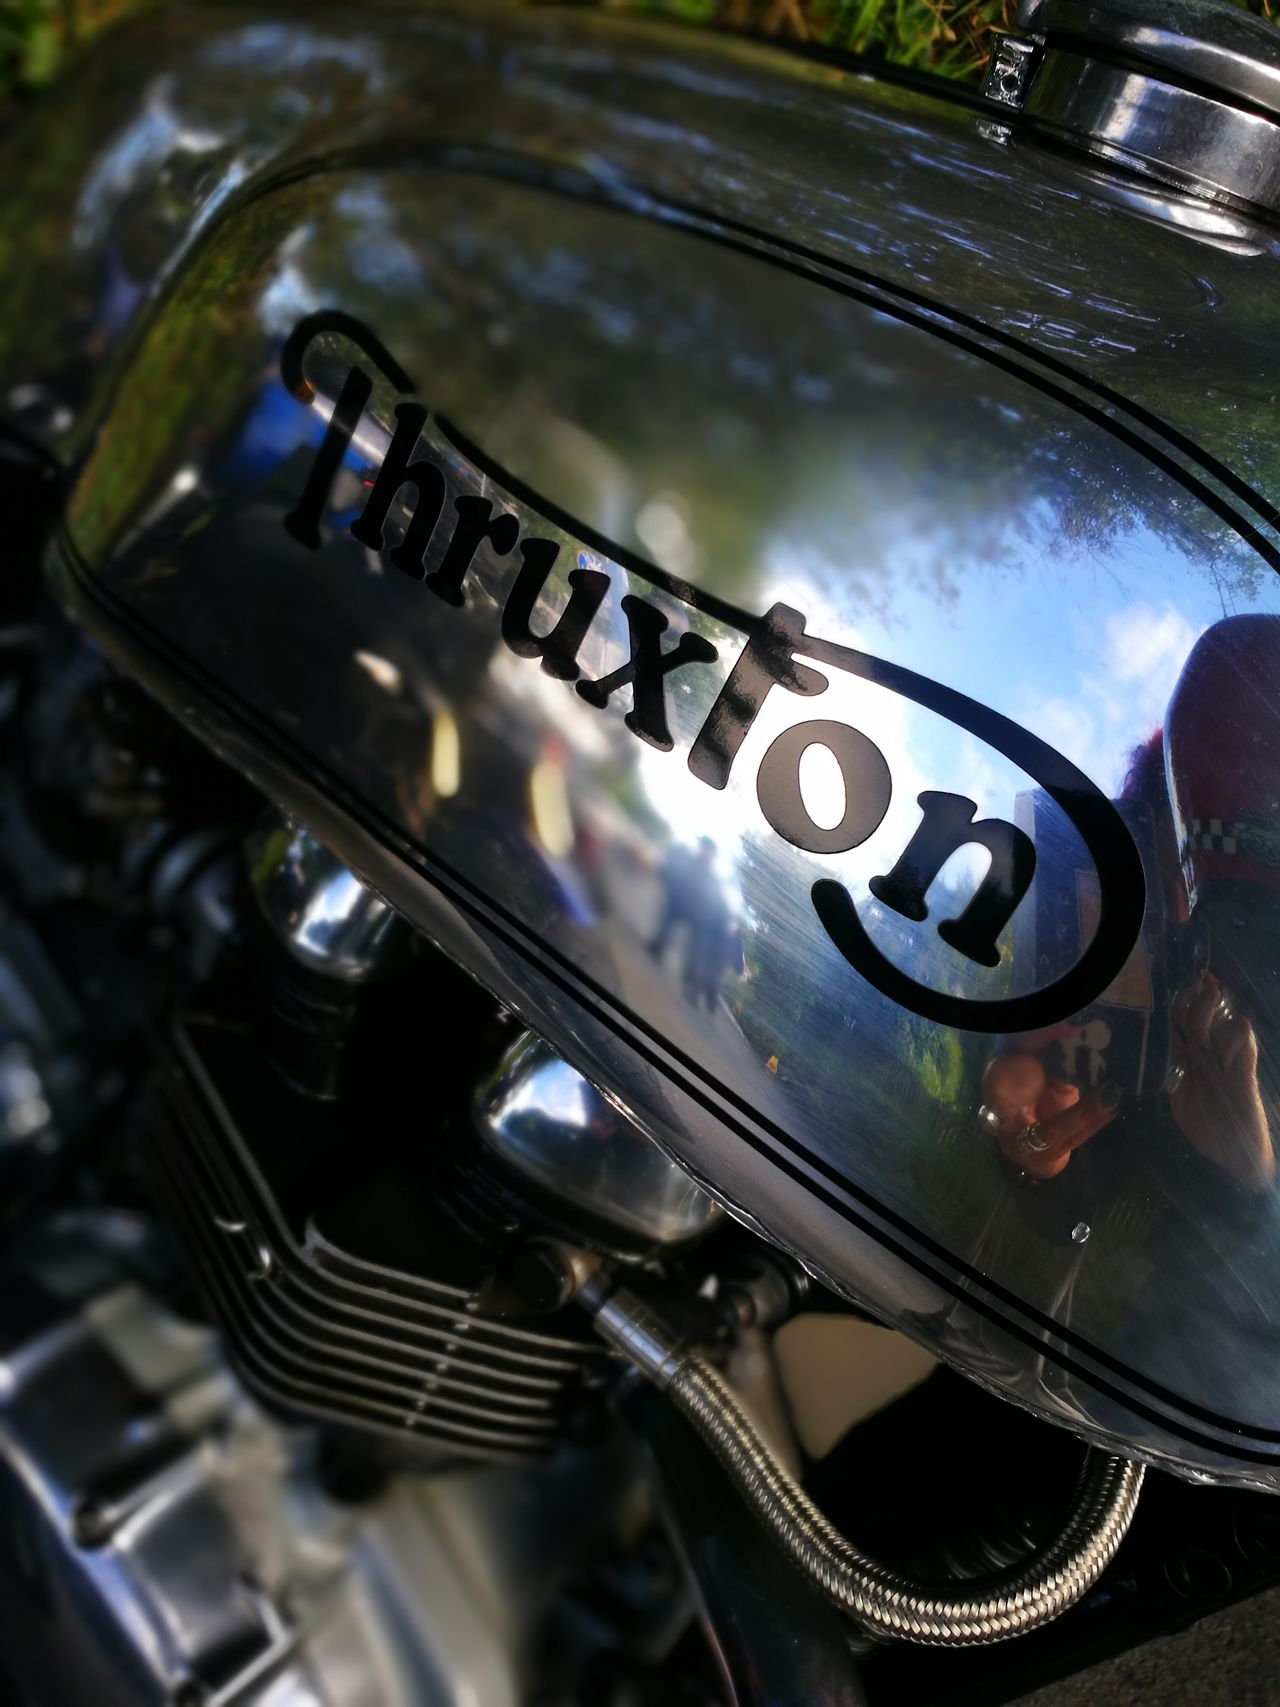 Thruxton THRUXTON 900 Thruxtonsonlythruxton Motorcycles Classicbikes Isle Of Man Isleofmantt Manx GP Hillberry Metal Close-up Extreme Close Up Motorcycle Photography Transportation